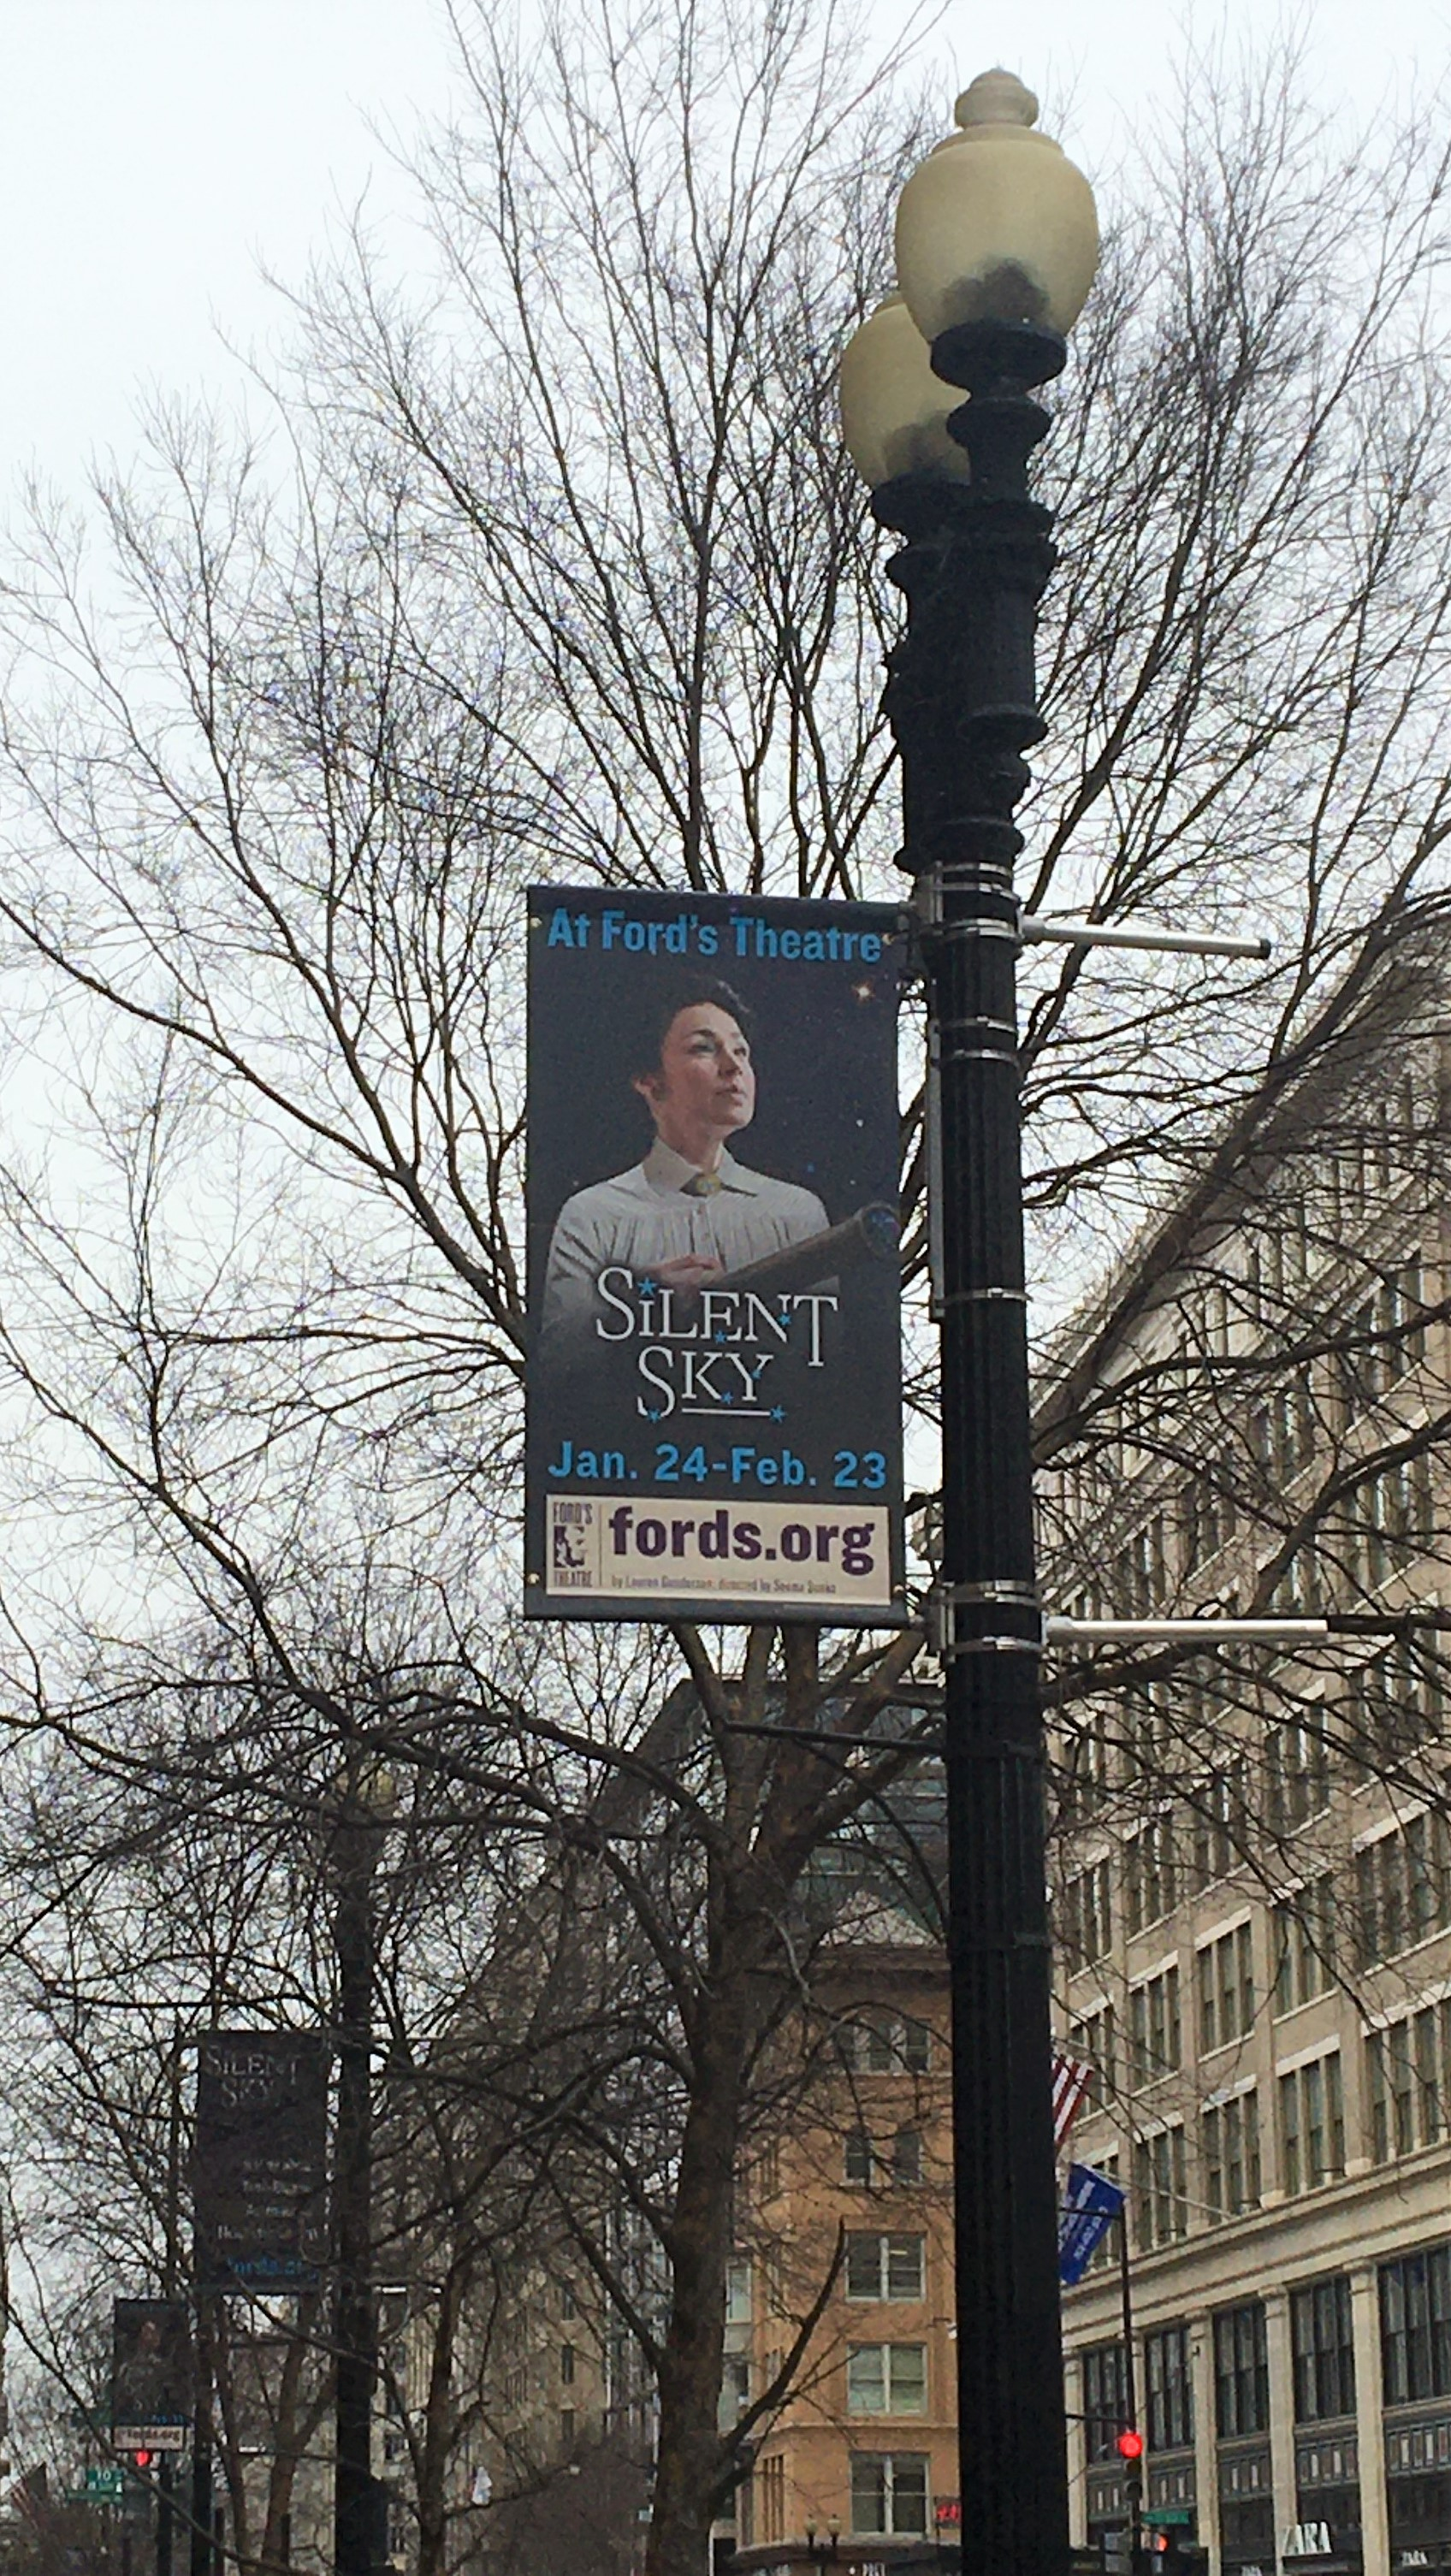 Silent Sky banners near Ford's Theatre